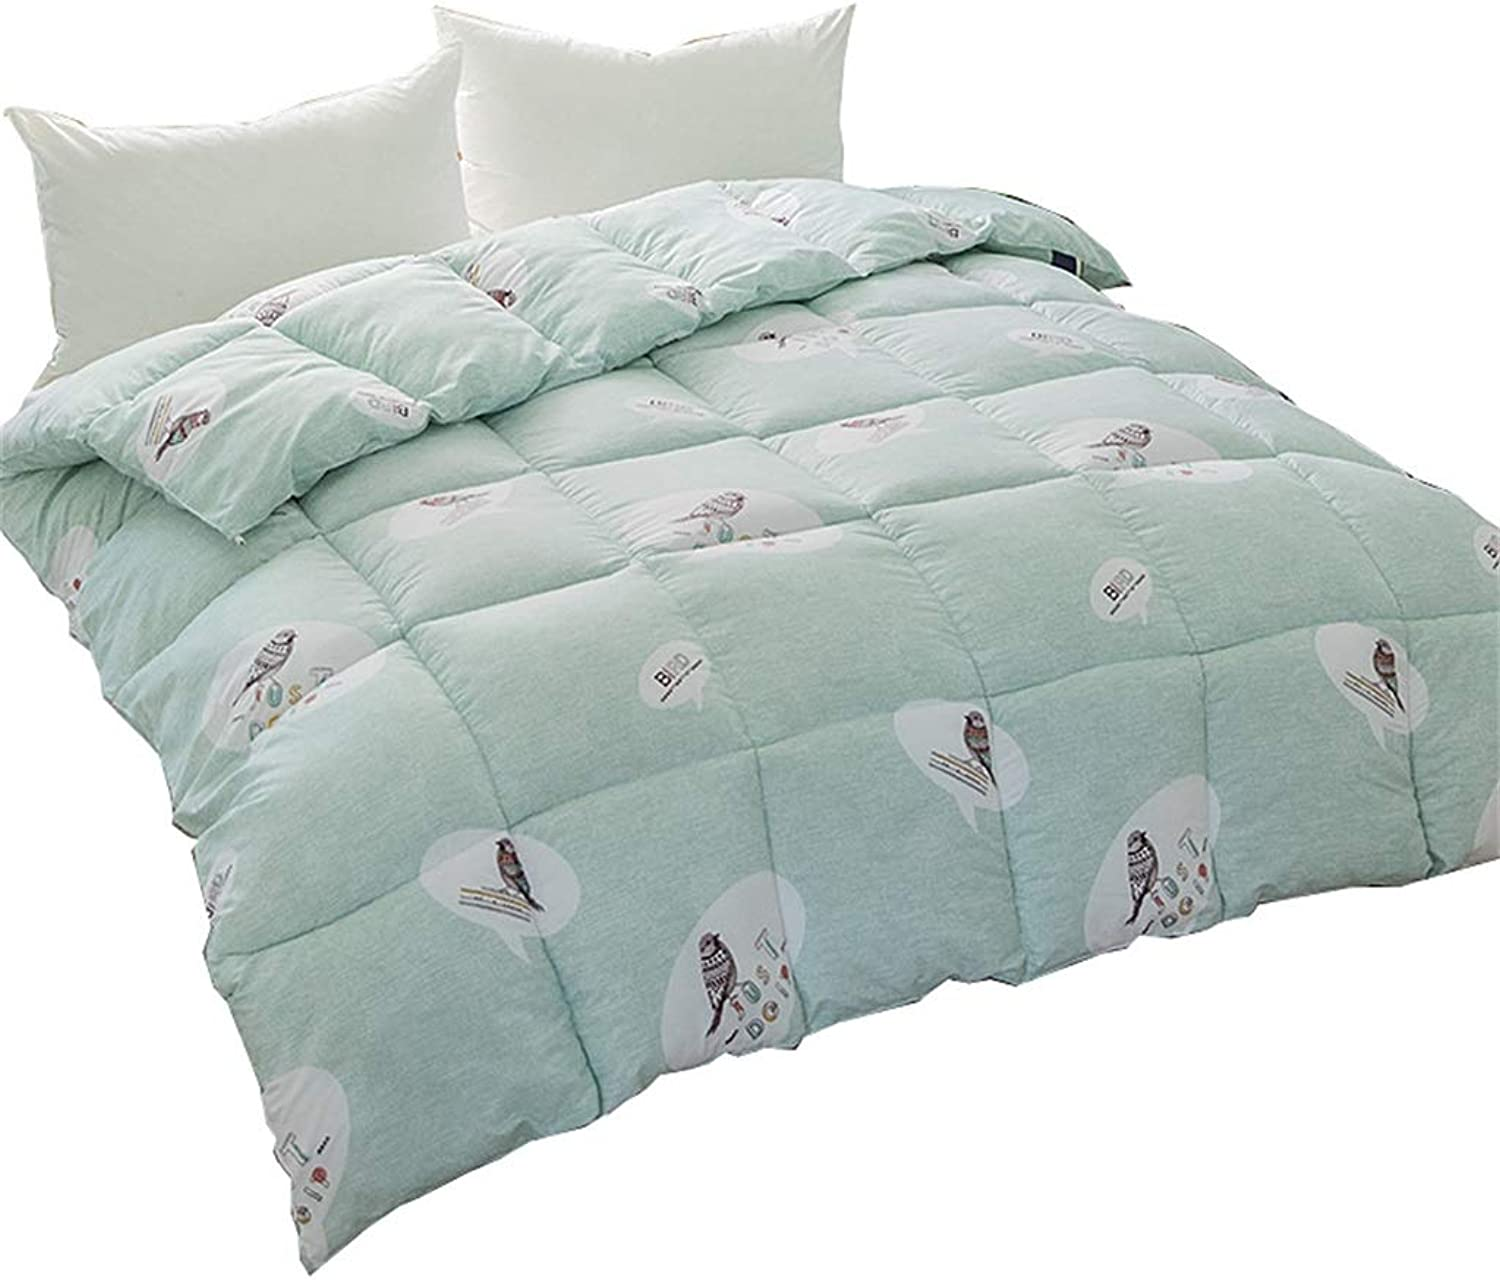 Quilt Stitched Down Alternative Comforter Winter Padded Double Quilt European Simple Solid Warm Hypoallergenic Soft All Season (Size   150cmx200cm2kg)